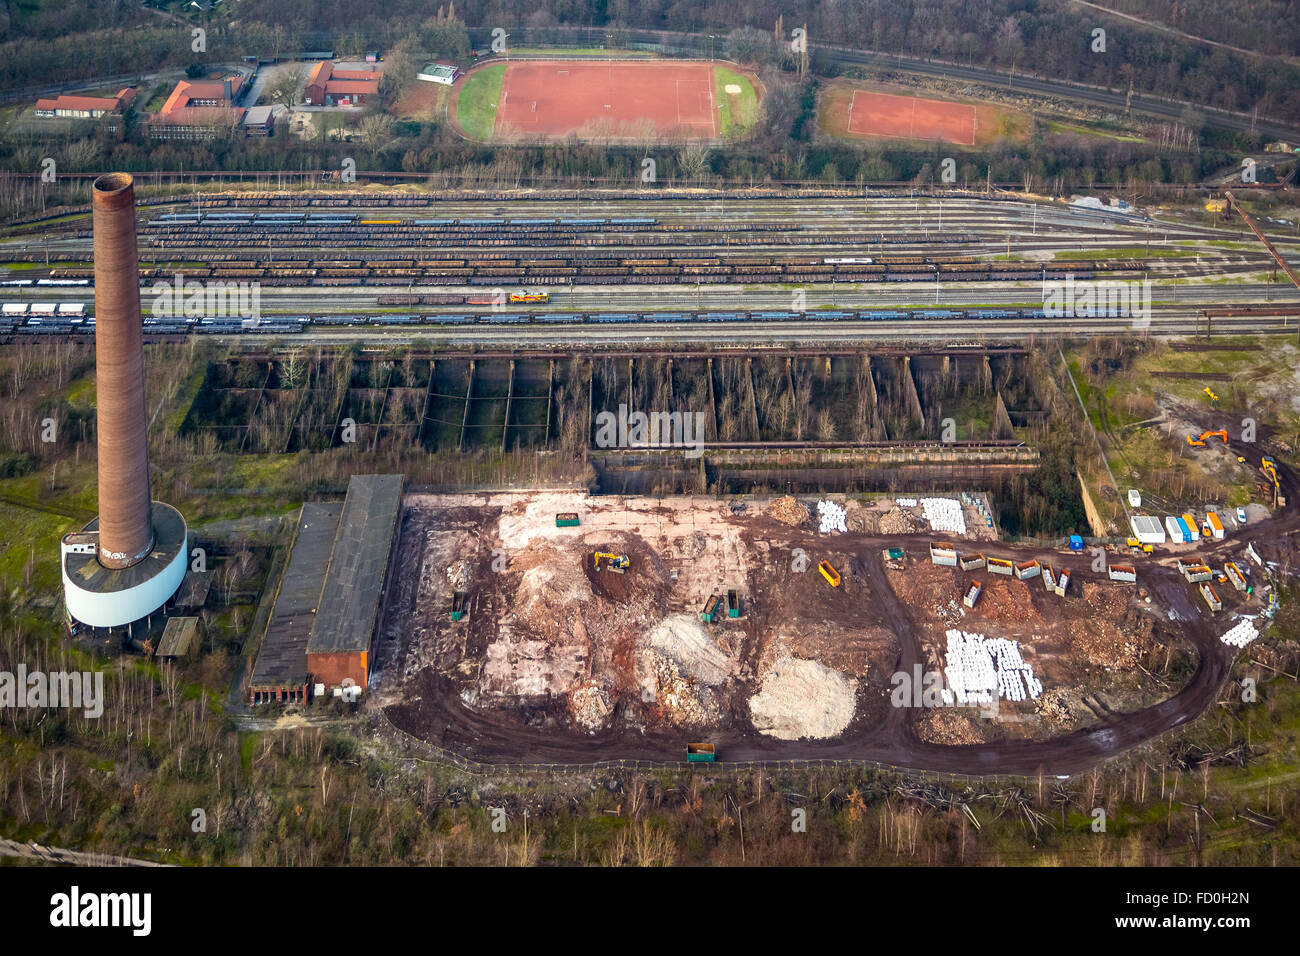 Aerial view, demolition of the sinter plant Duisburg-Beeck, brick chimney, structural change, industrial ruin, Duisburg, - Stock Image